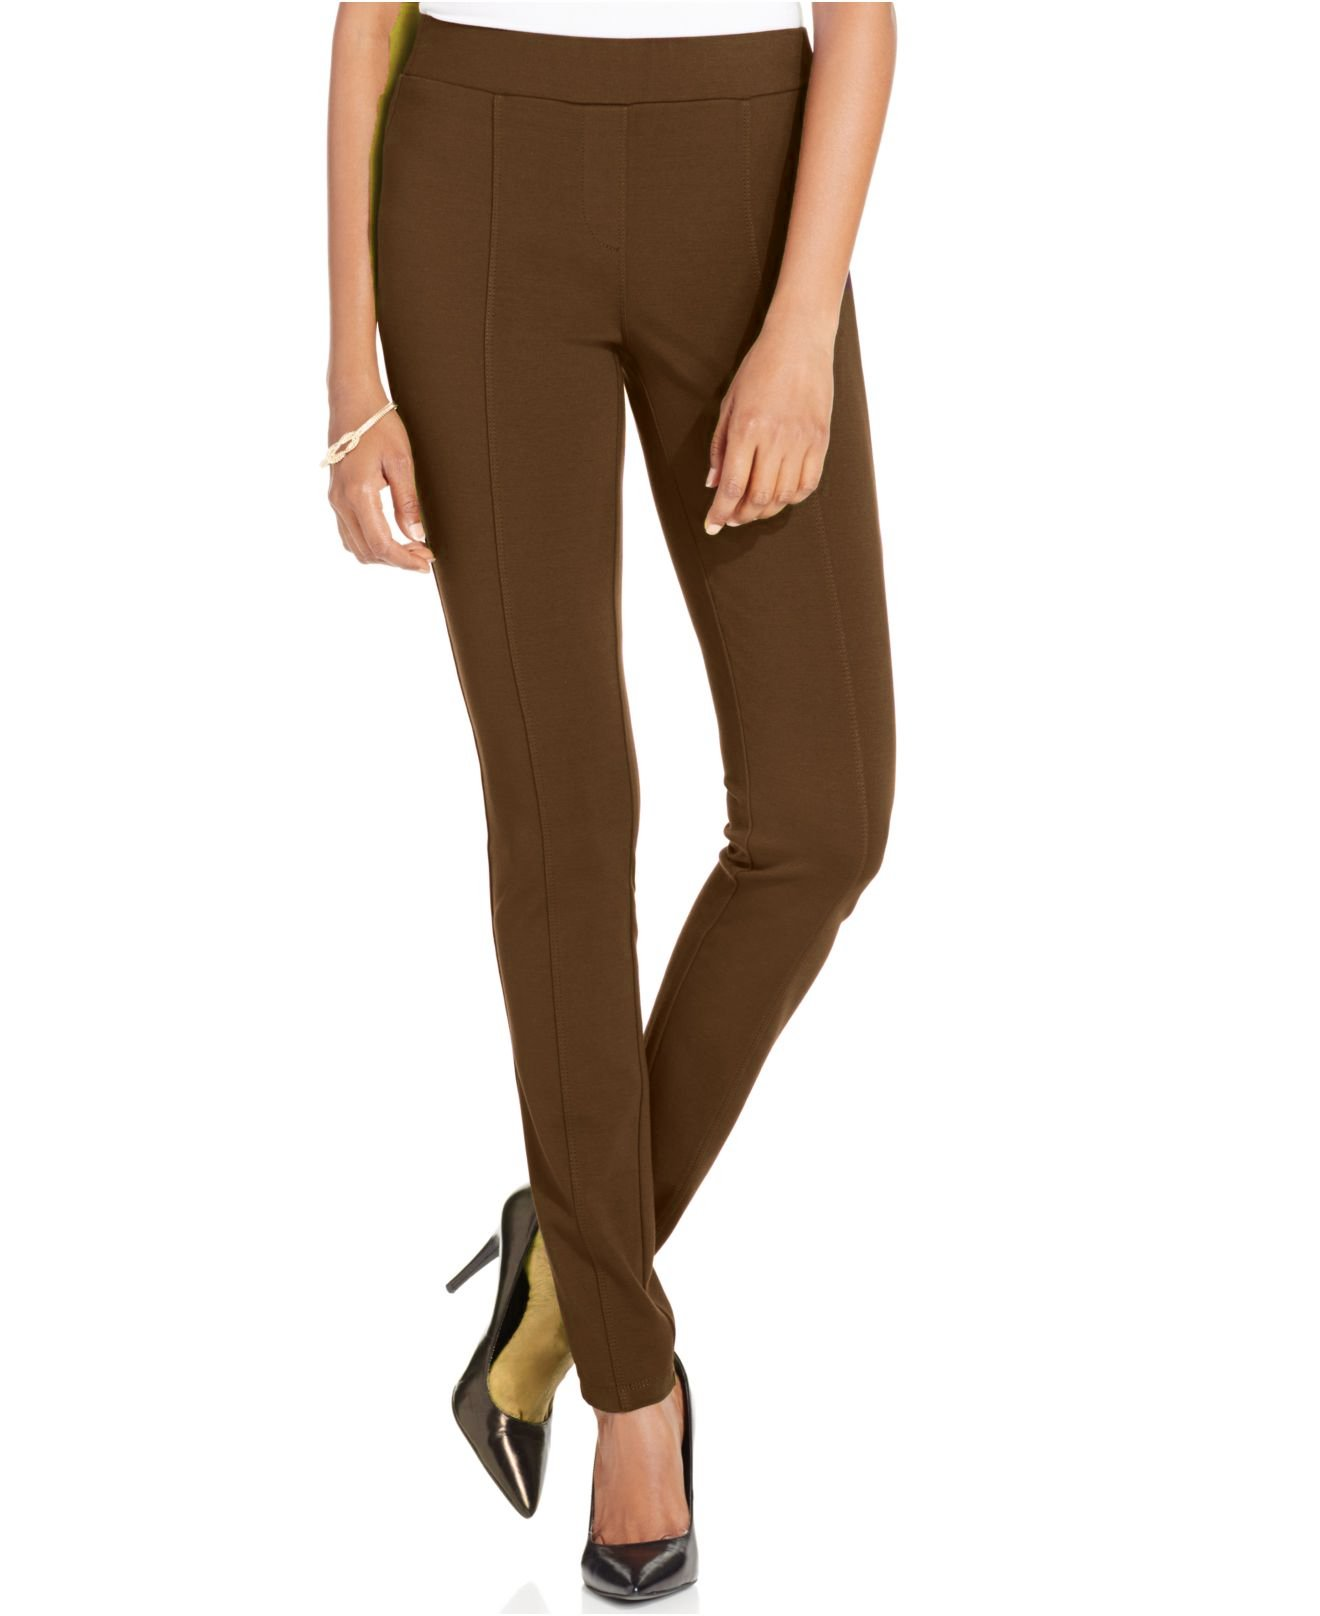 Style & co. Stretch Seam-Front Ponte Leggings (Medium, Espresso Bean)